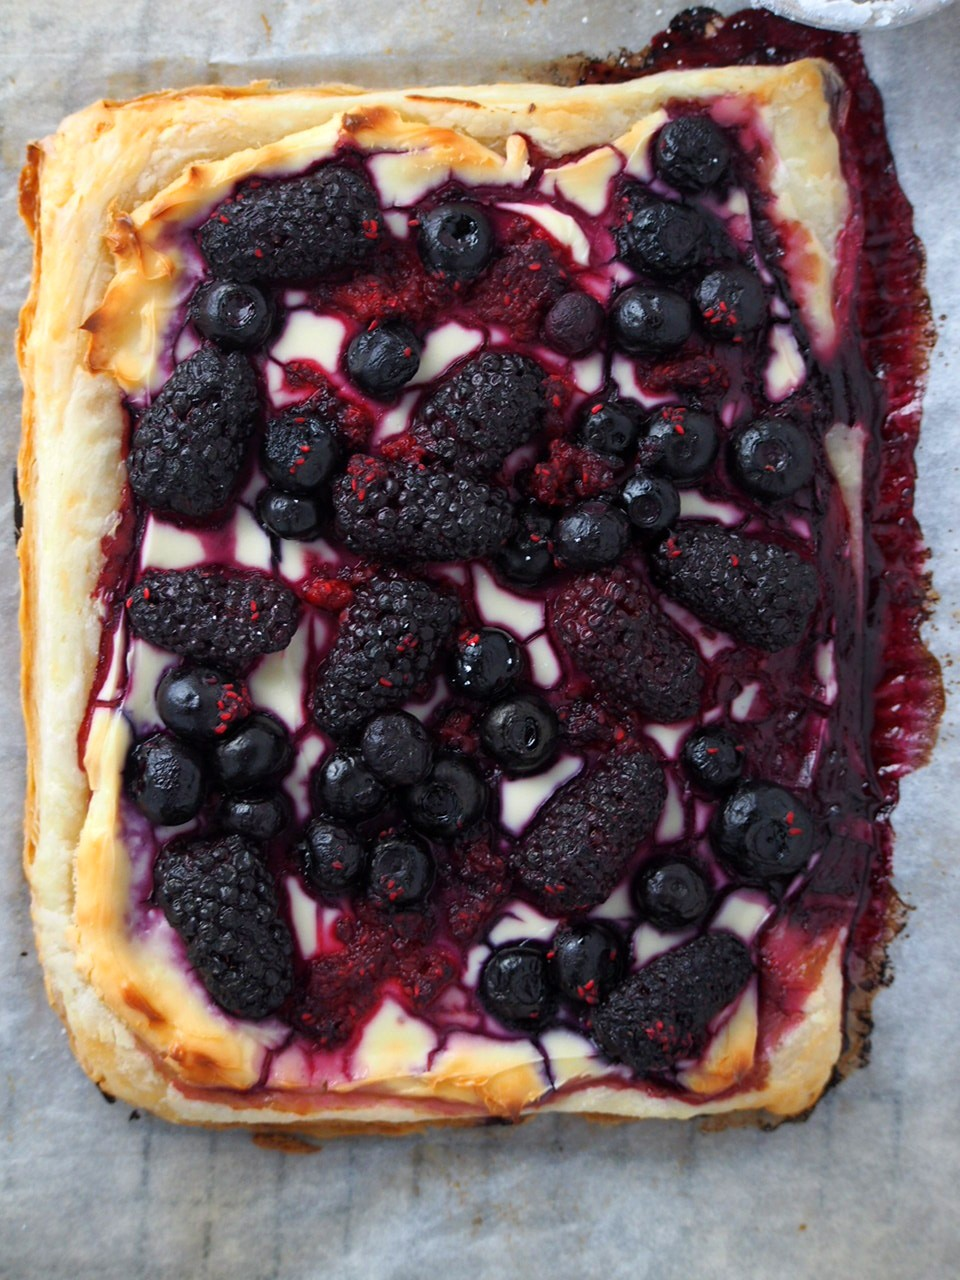 The berry tart fresh from the oven.